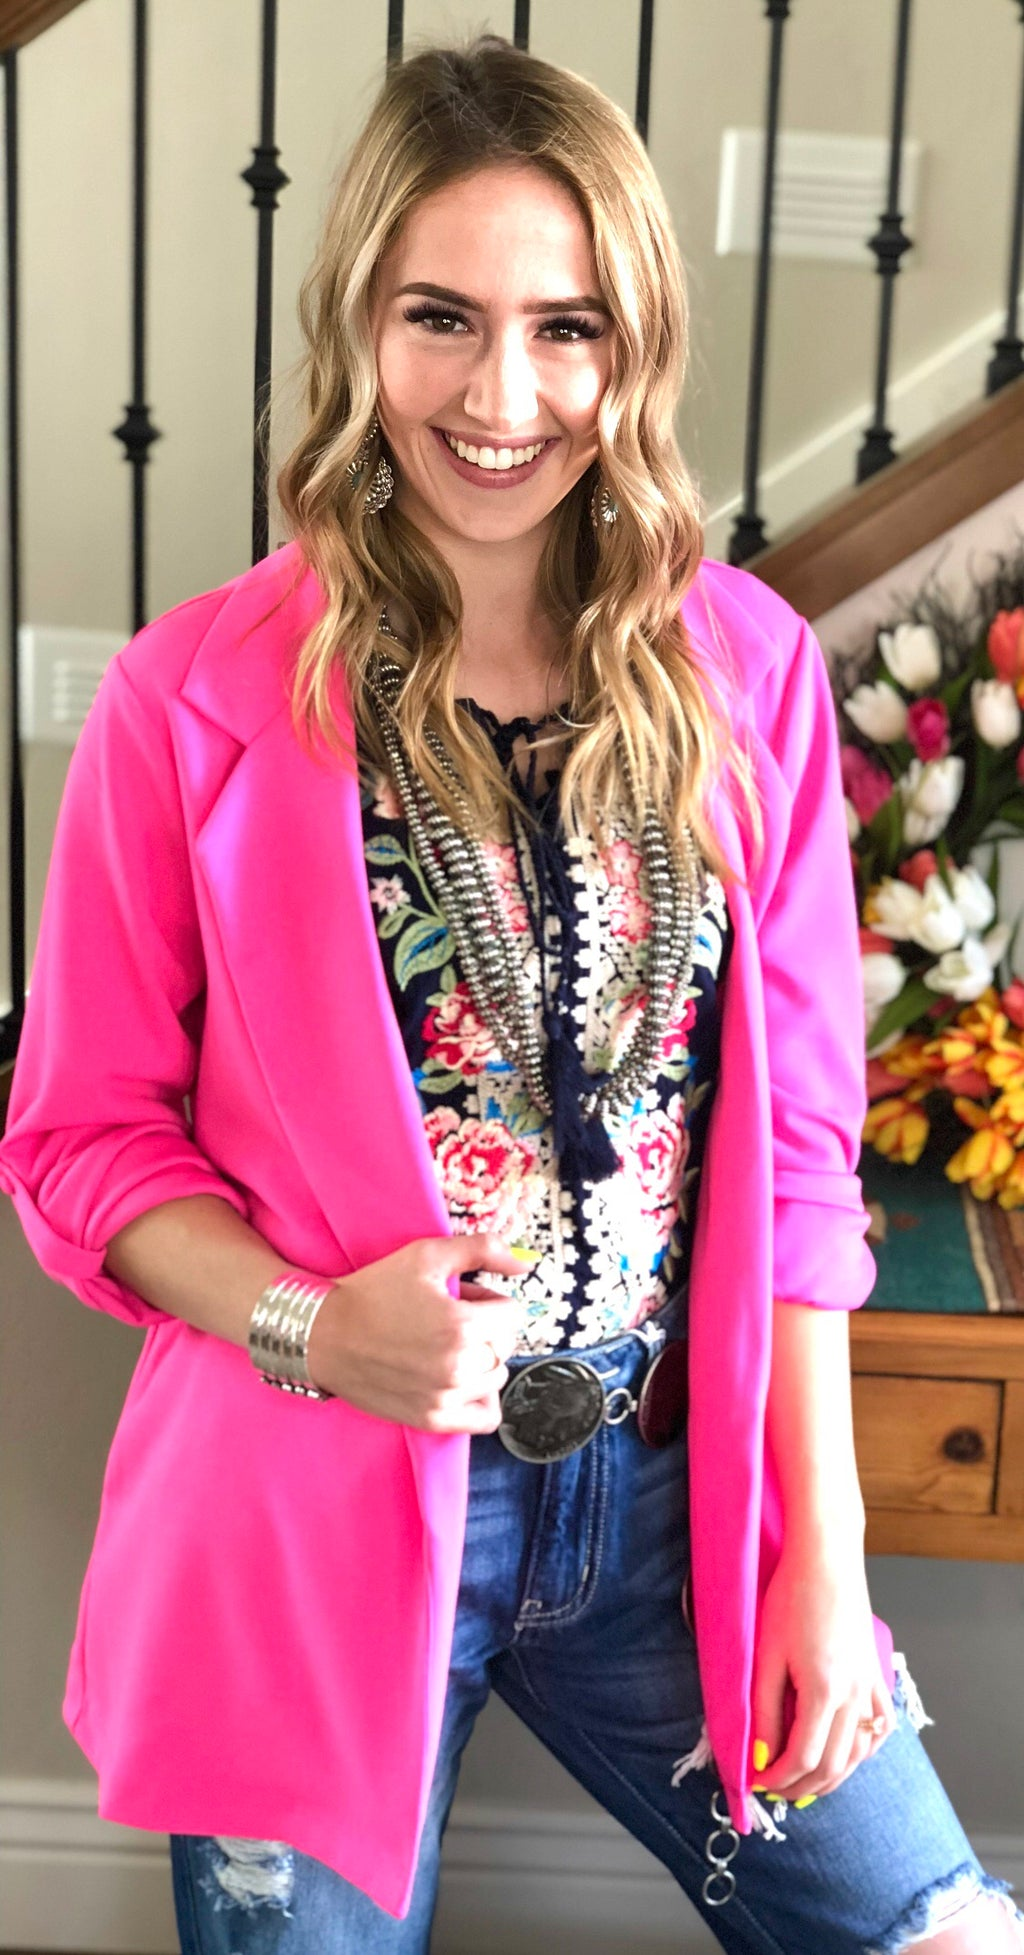 The Pecos Hot Pink Blazer